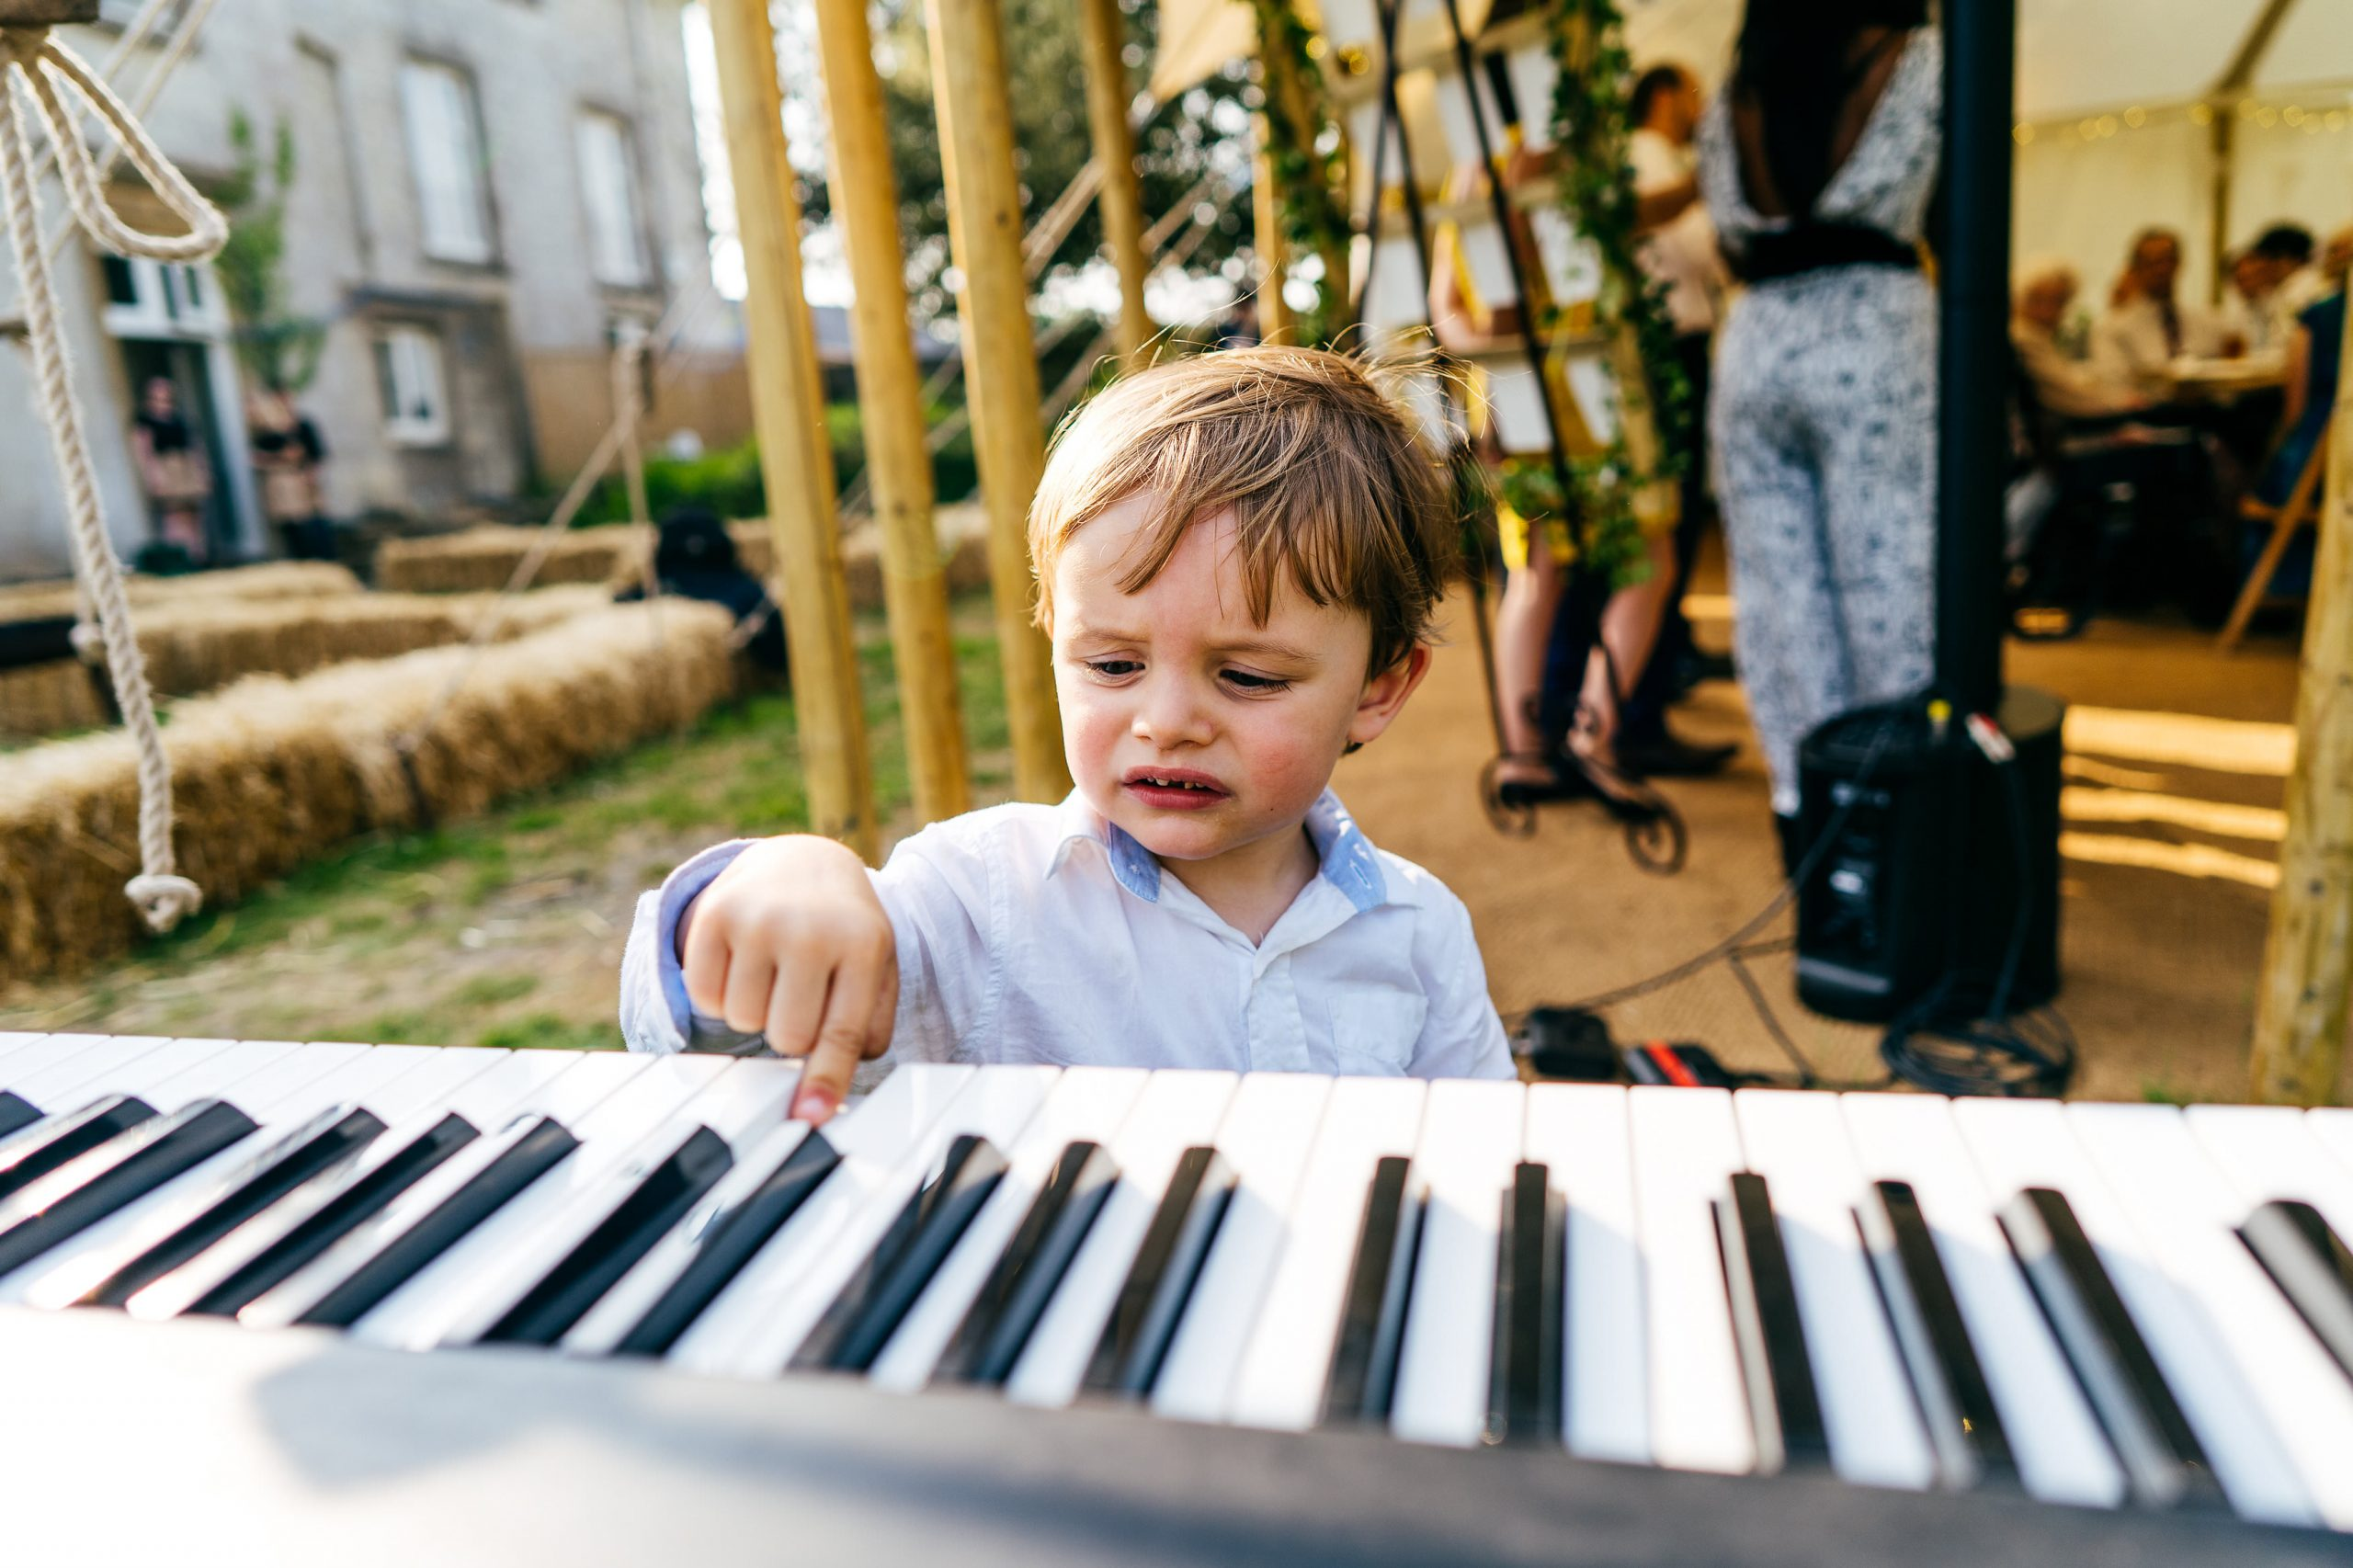 Kid plays piano during wedding speeches